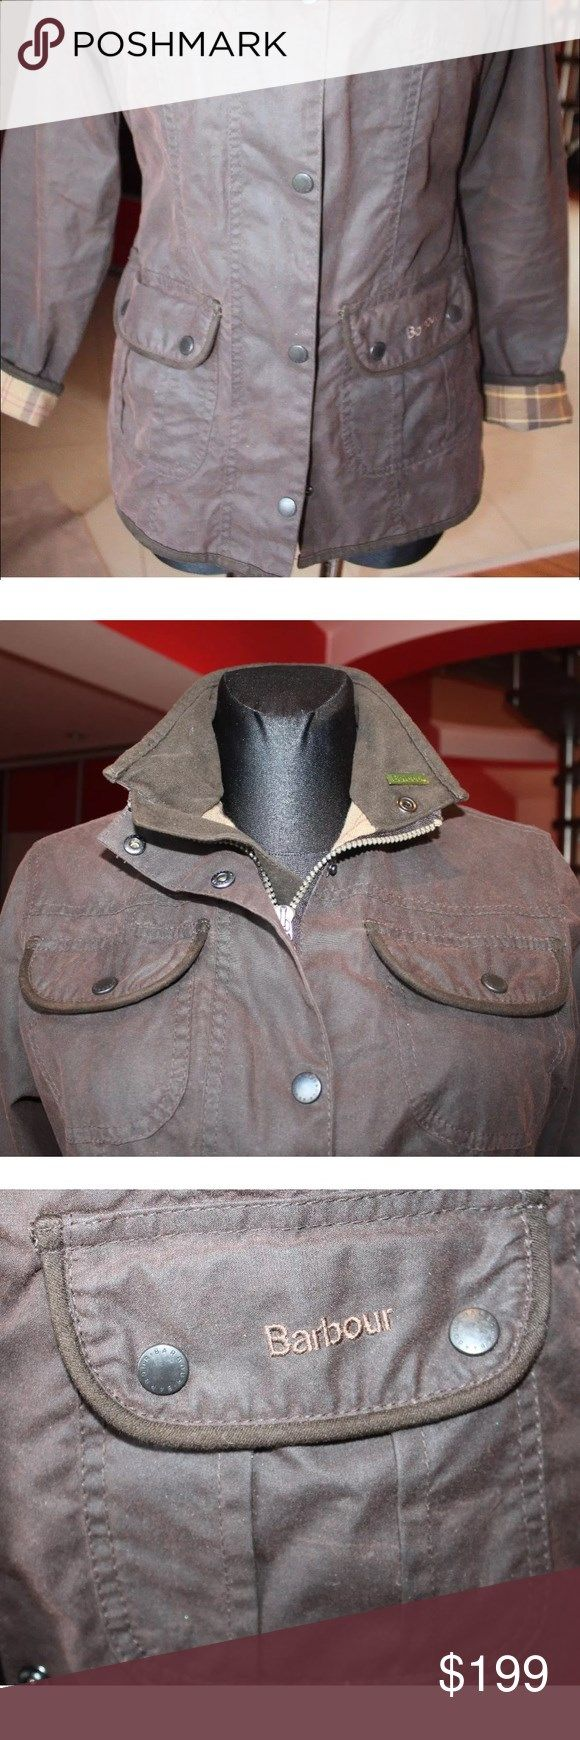 Barbour womens jacket WAXED Waxed Barbour jacket size 4 perfect, new condition Barbour Jackets  Coats Utility Jackets